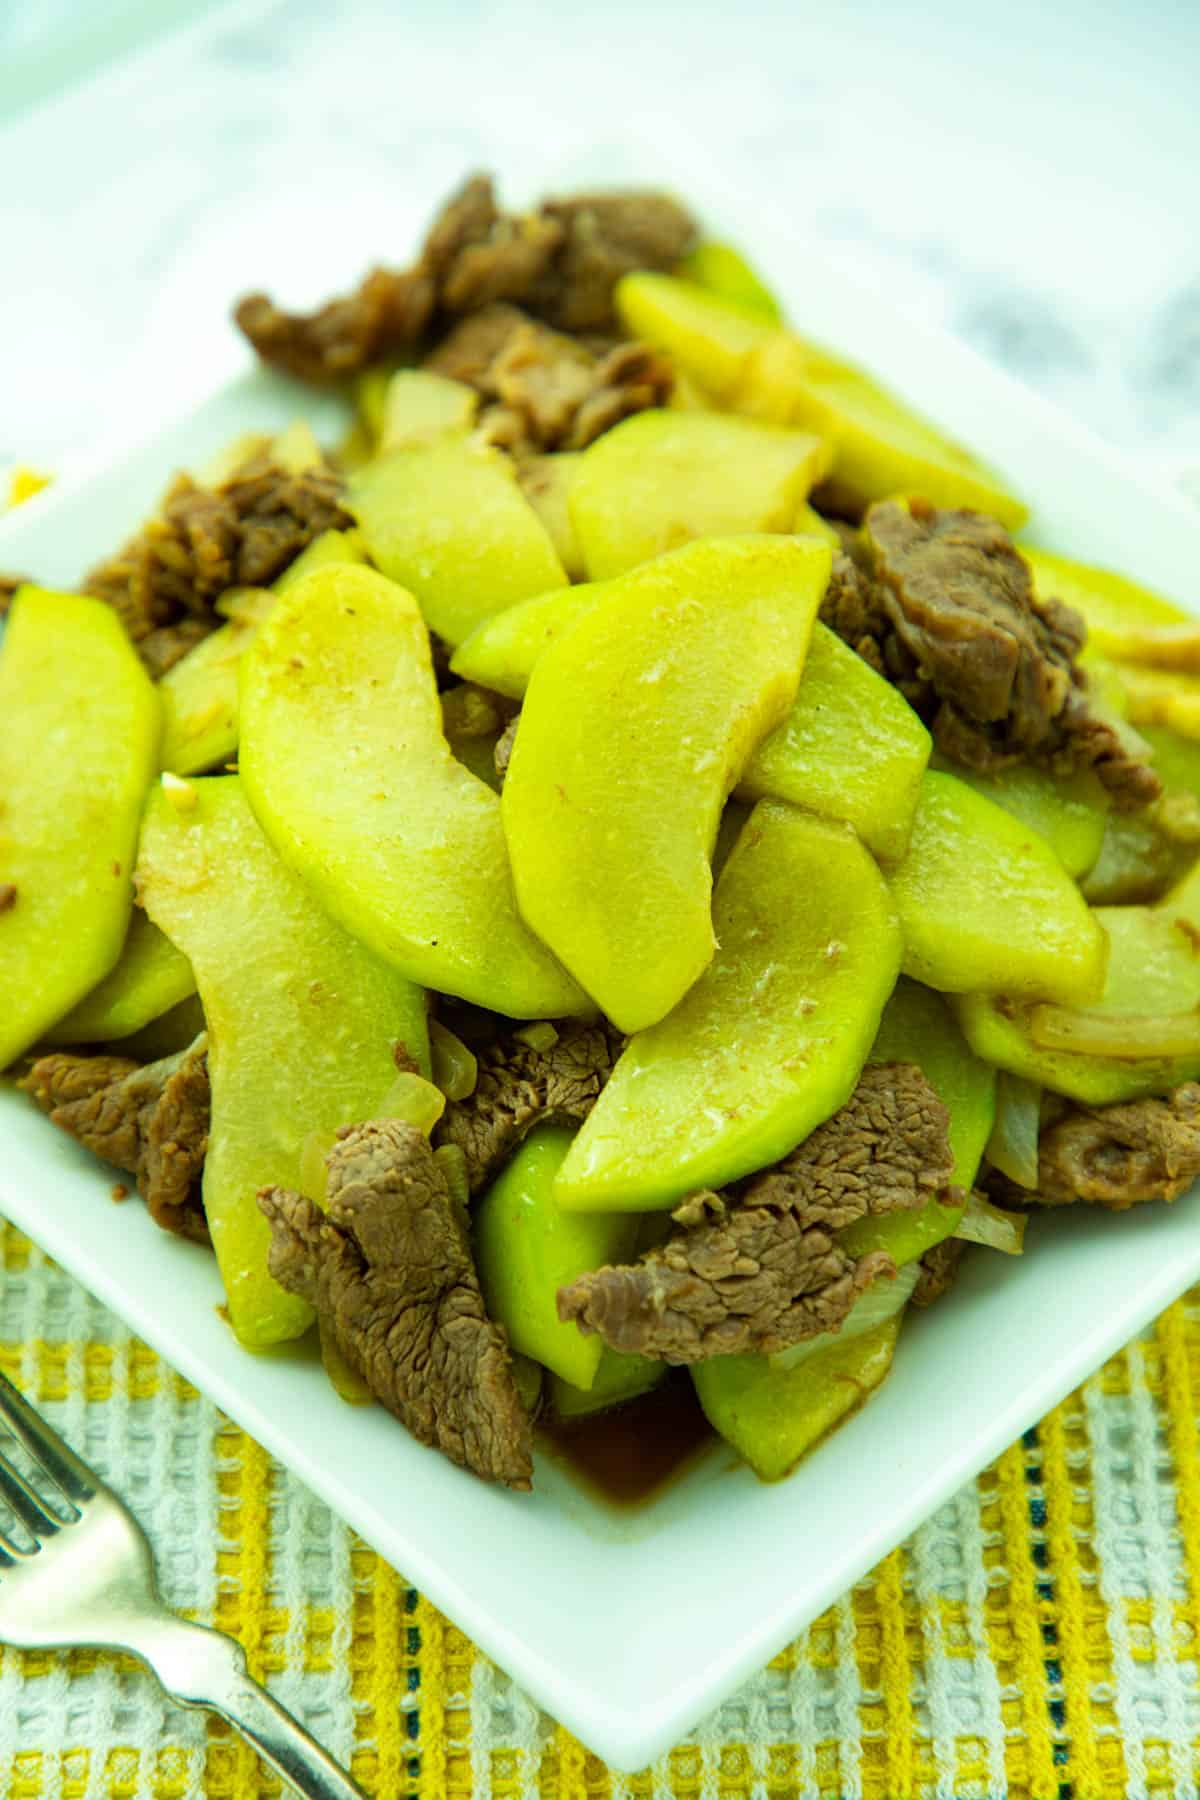 sautéed beef and chayote squash is seasoned with soy sauce and fish sauce. The chayote squash is tender-crisp and has a slightly sweet taste to it. Guisadong Sayote via @seasiderecipes